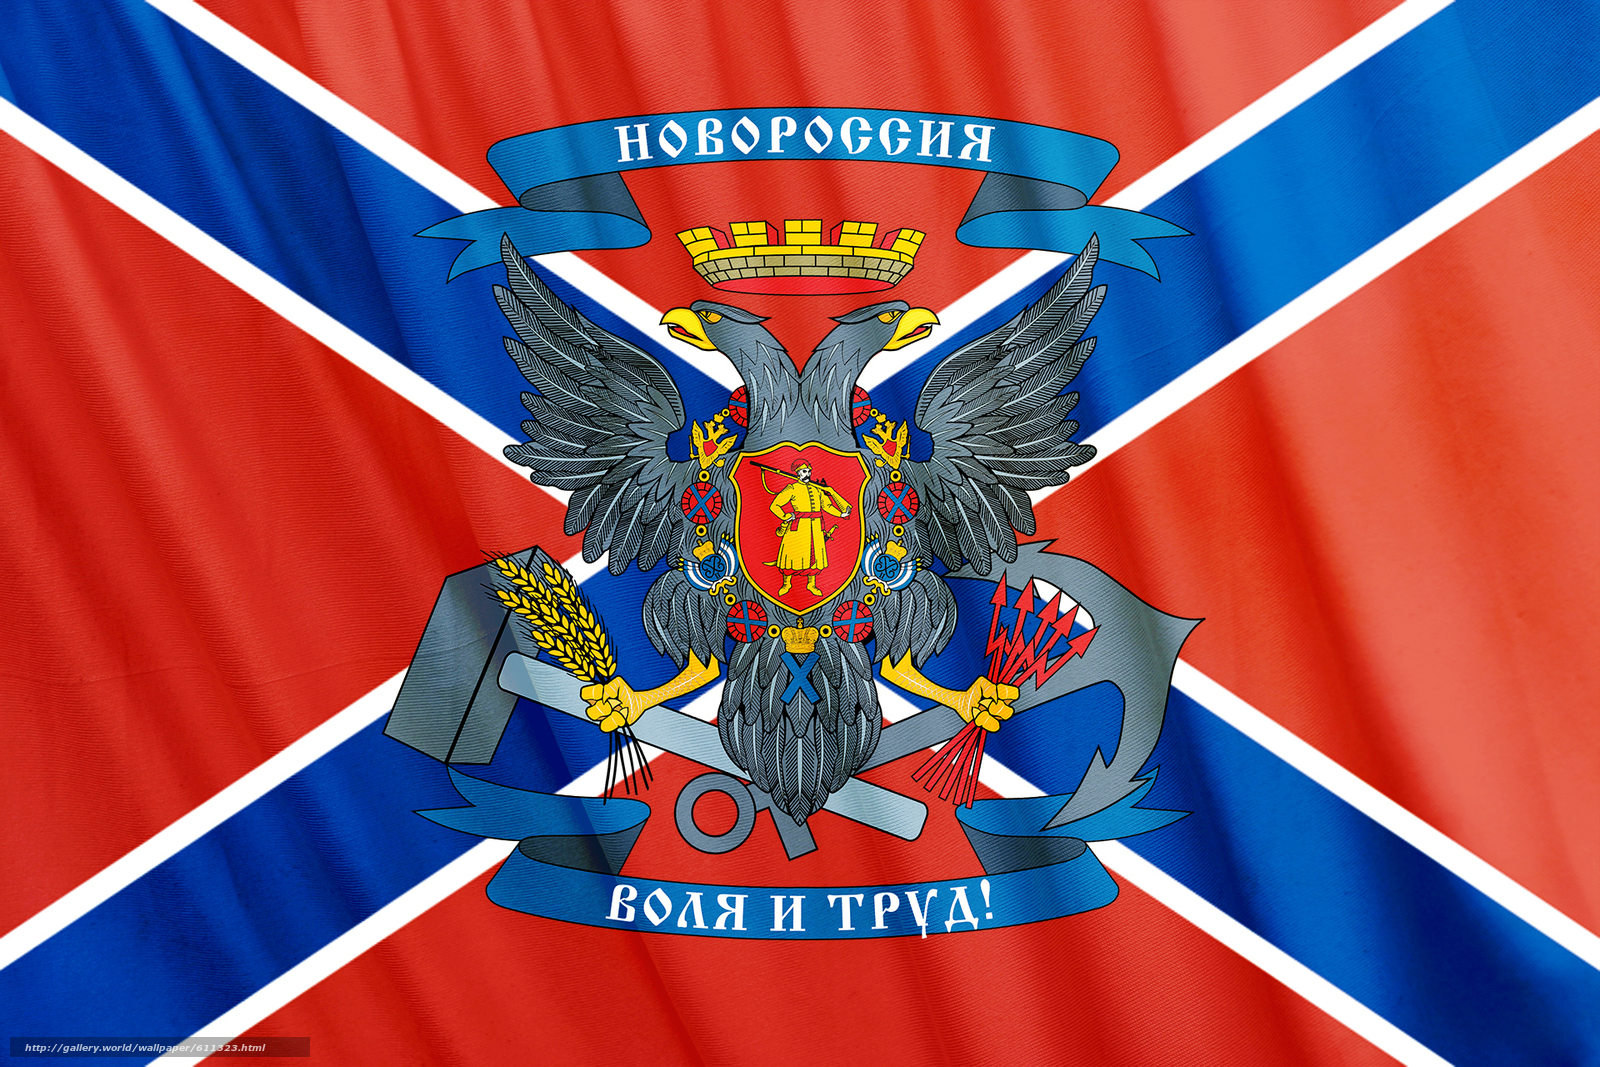 Download wallpaper Novorossia,  flag,  coat of arms,  Donetsk free desktop wallpaper in the resolution 1920x1280 — picture №611323